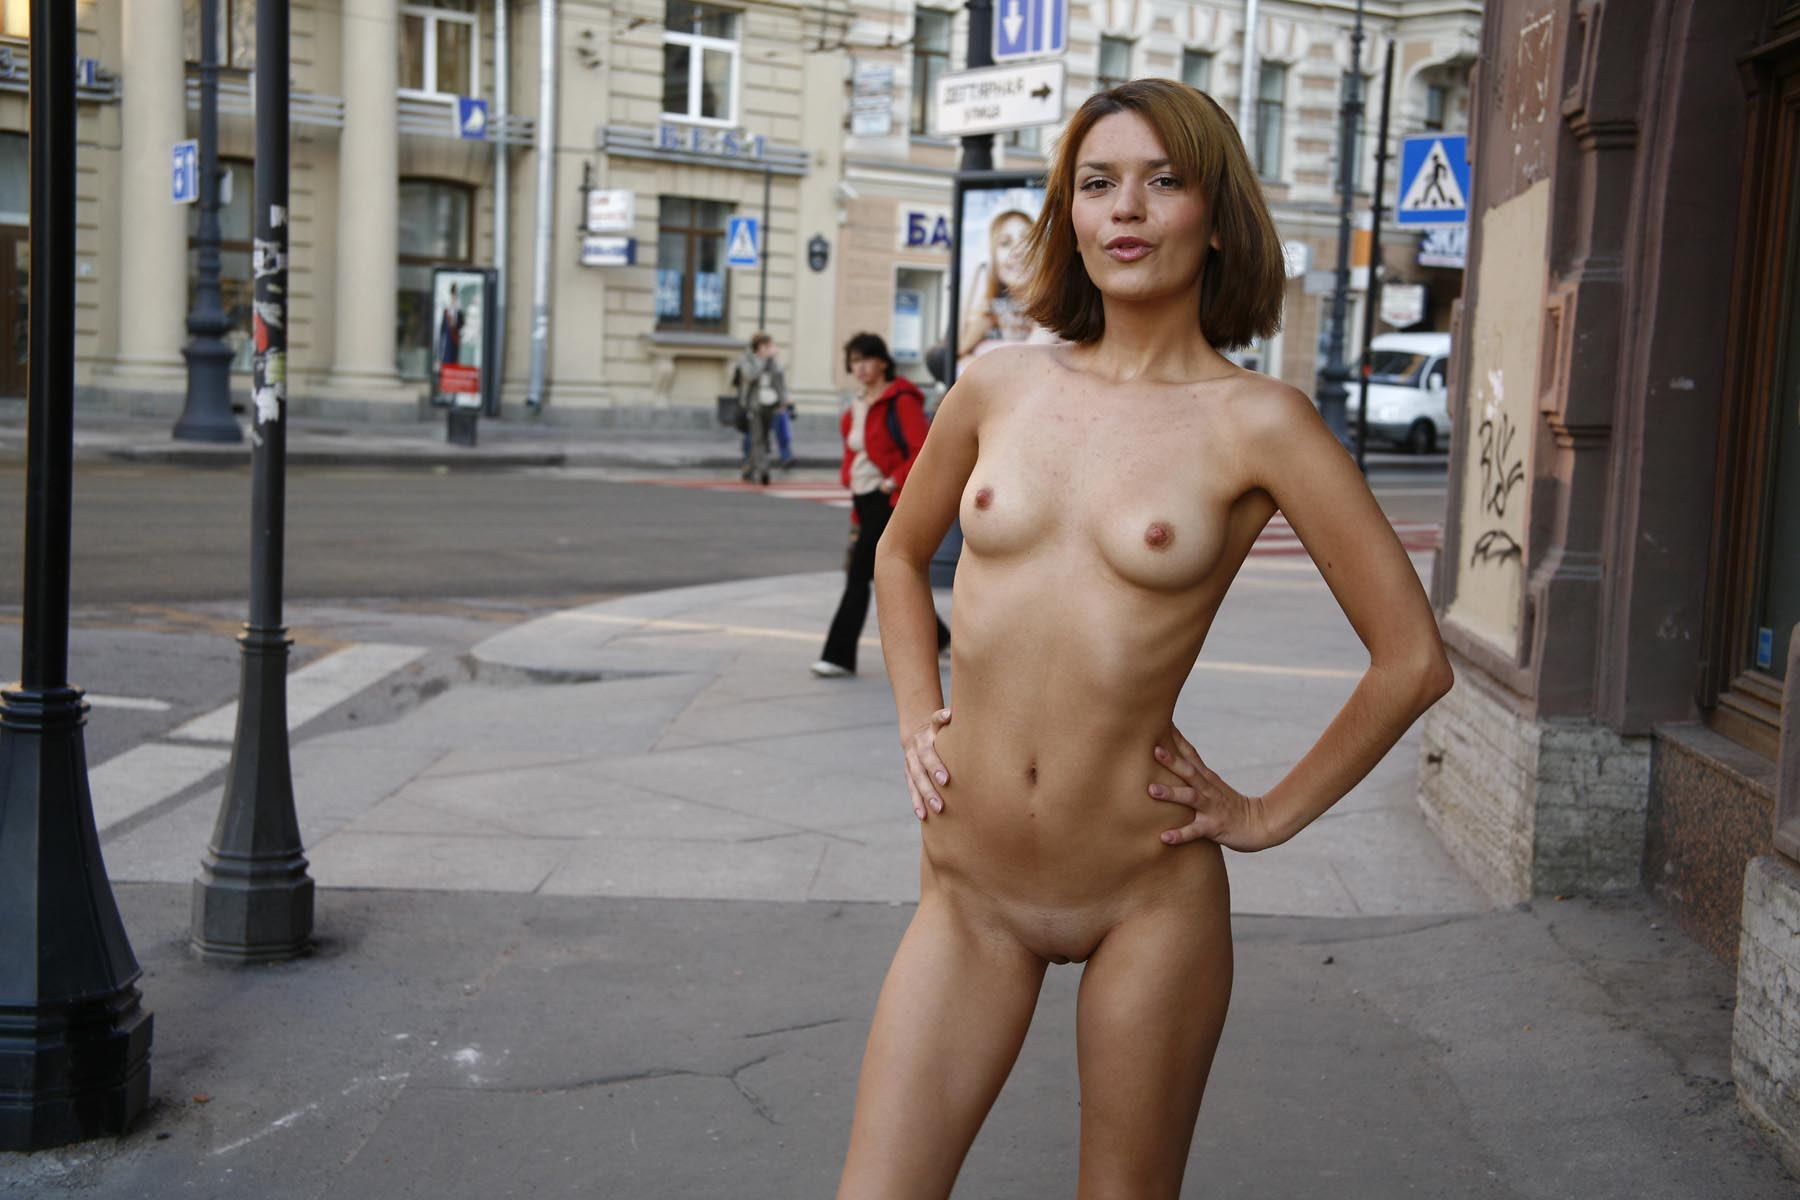 City nud girls photos what